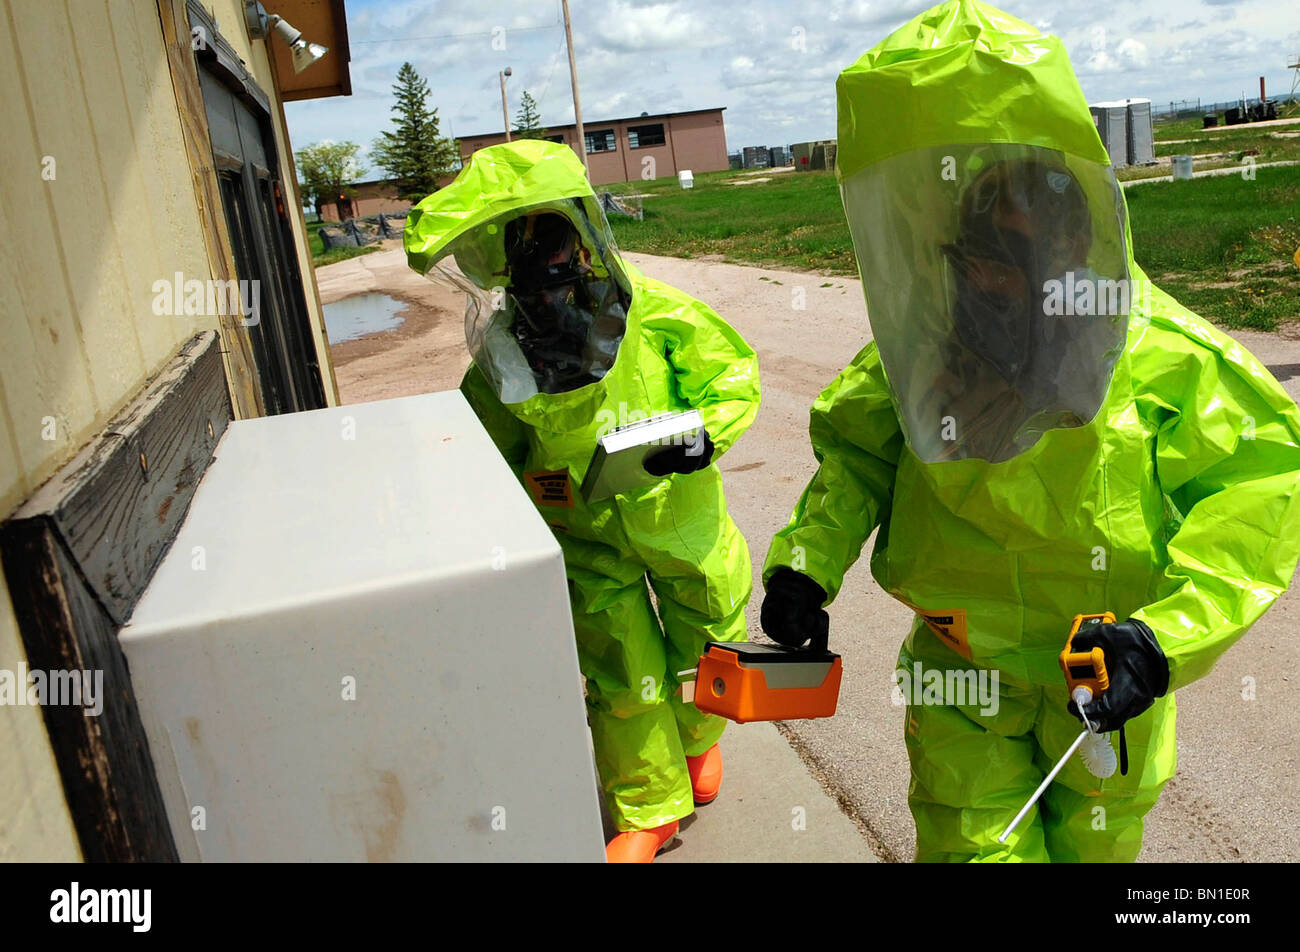 Emergency management exercise preparing for chemical, biological, radiological detection and decontamination. - Stock Image